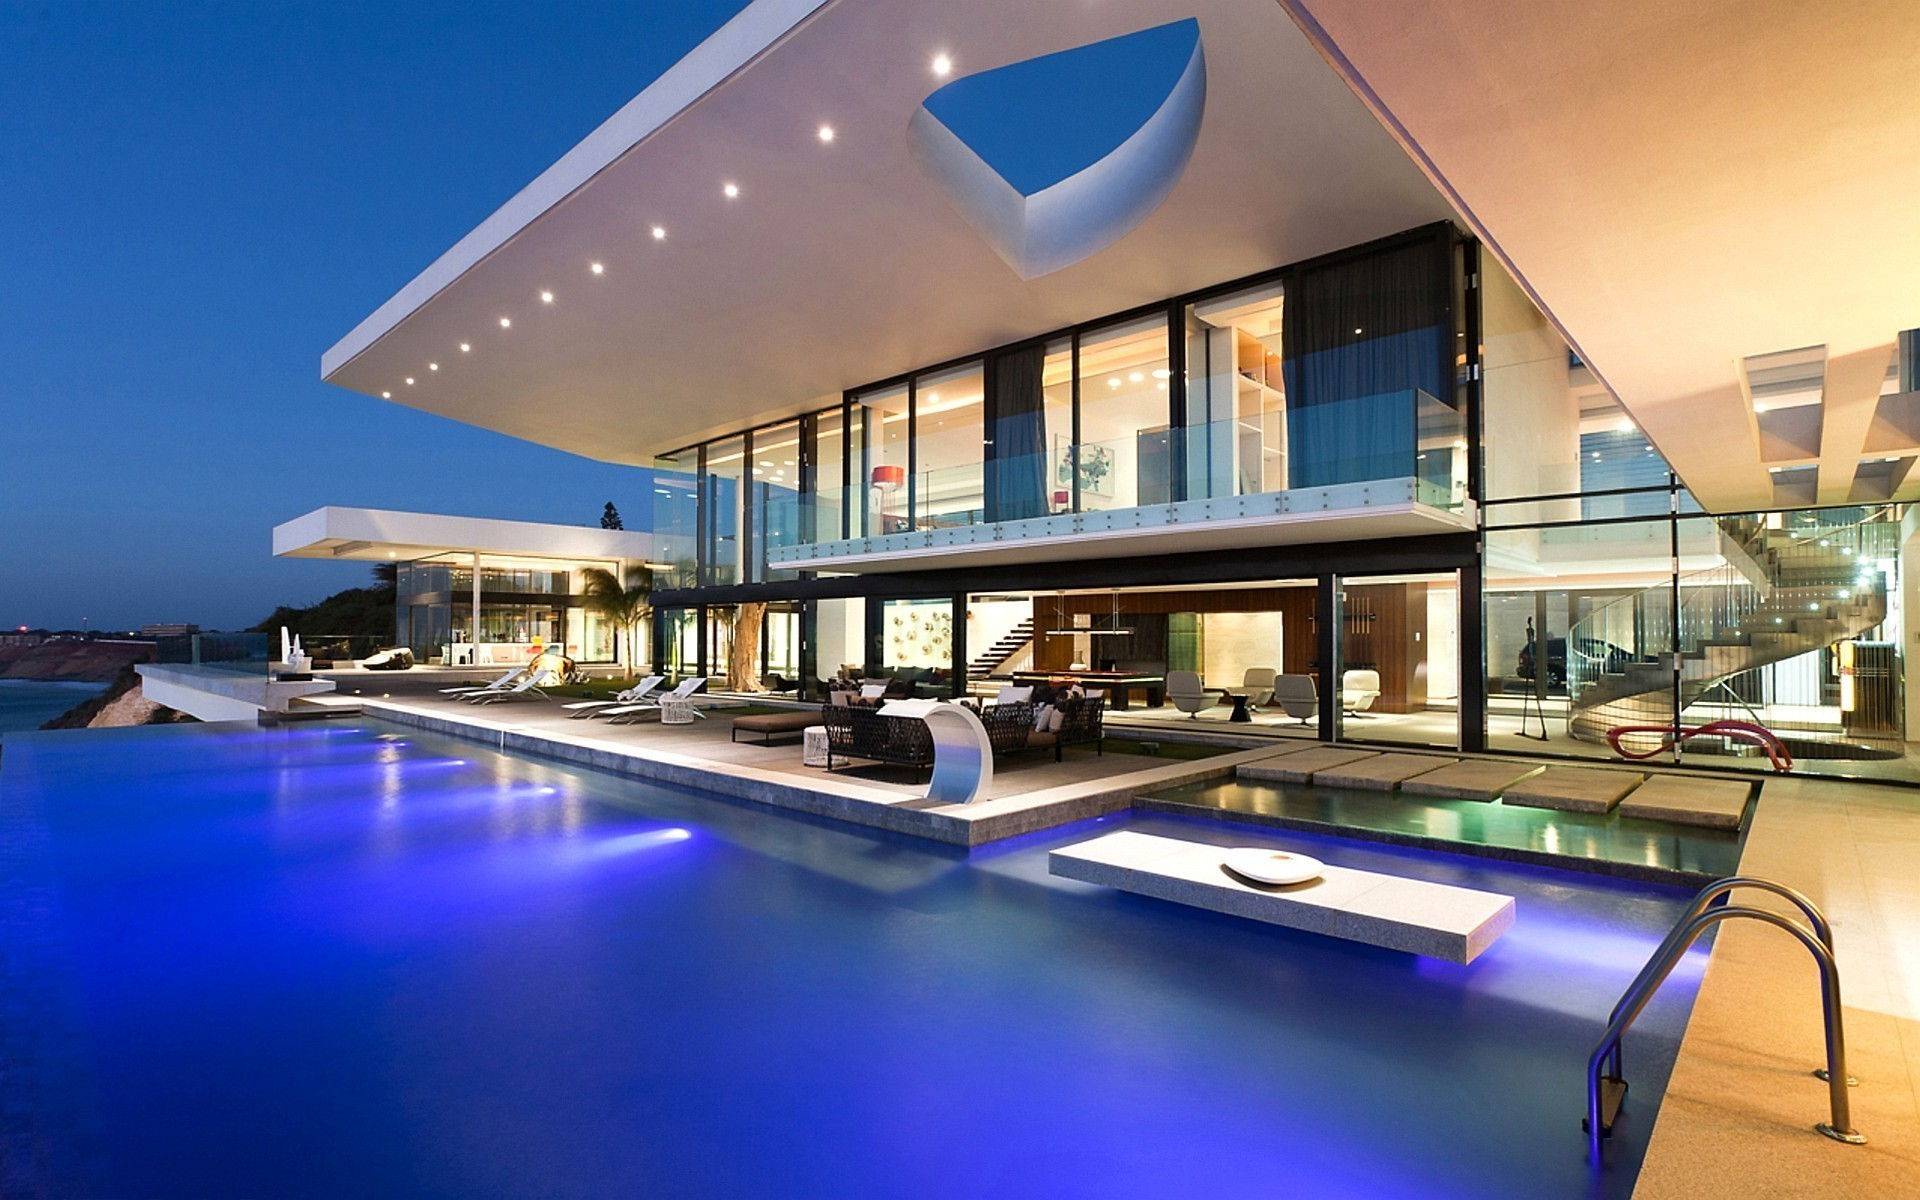 Luxury Modern Building Mansion In The Worlds Modern House